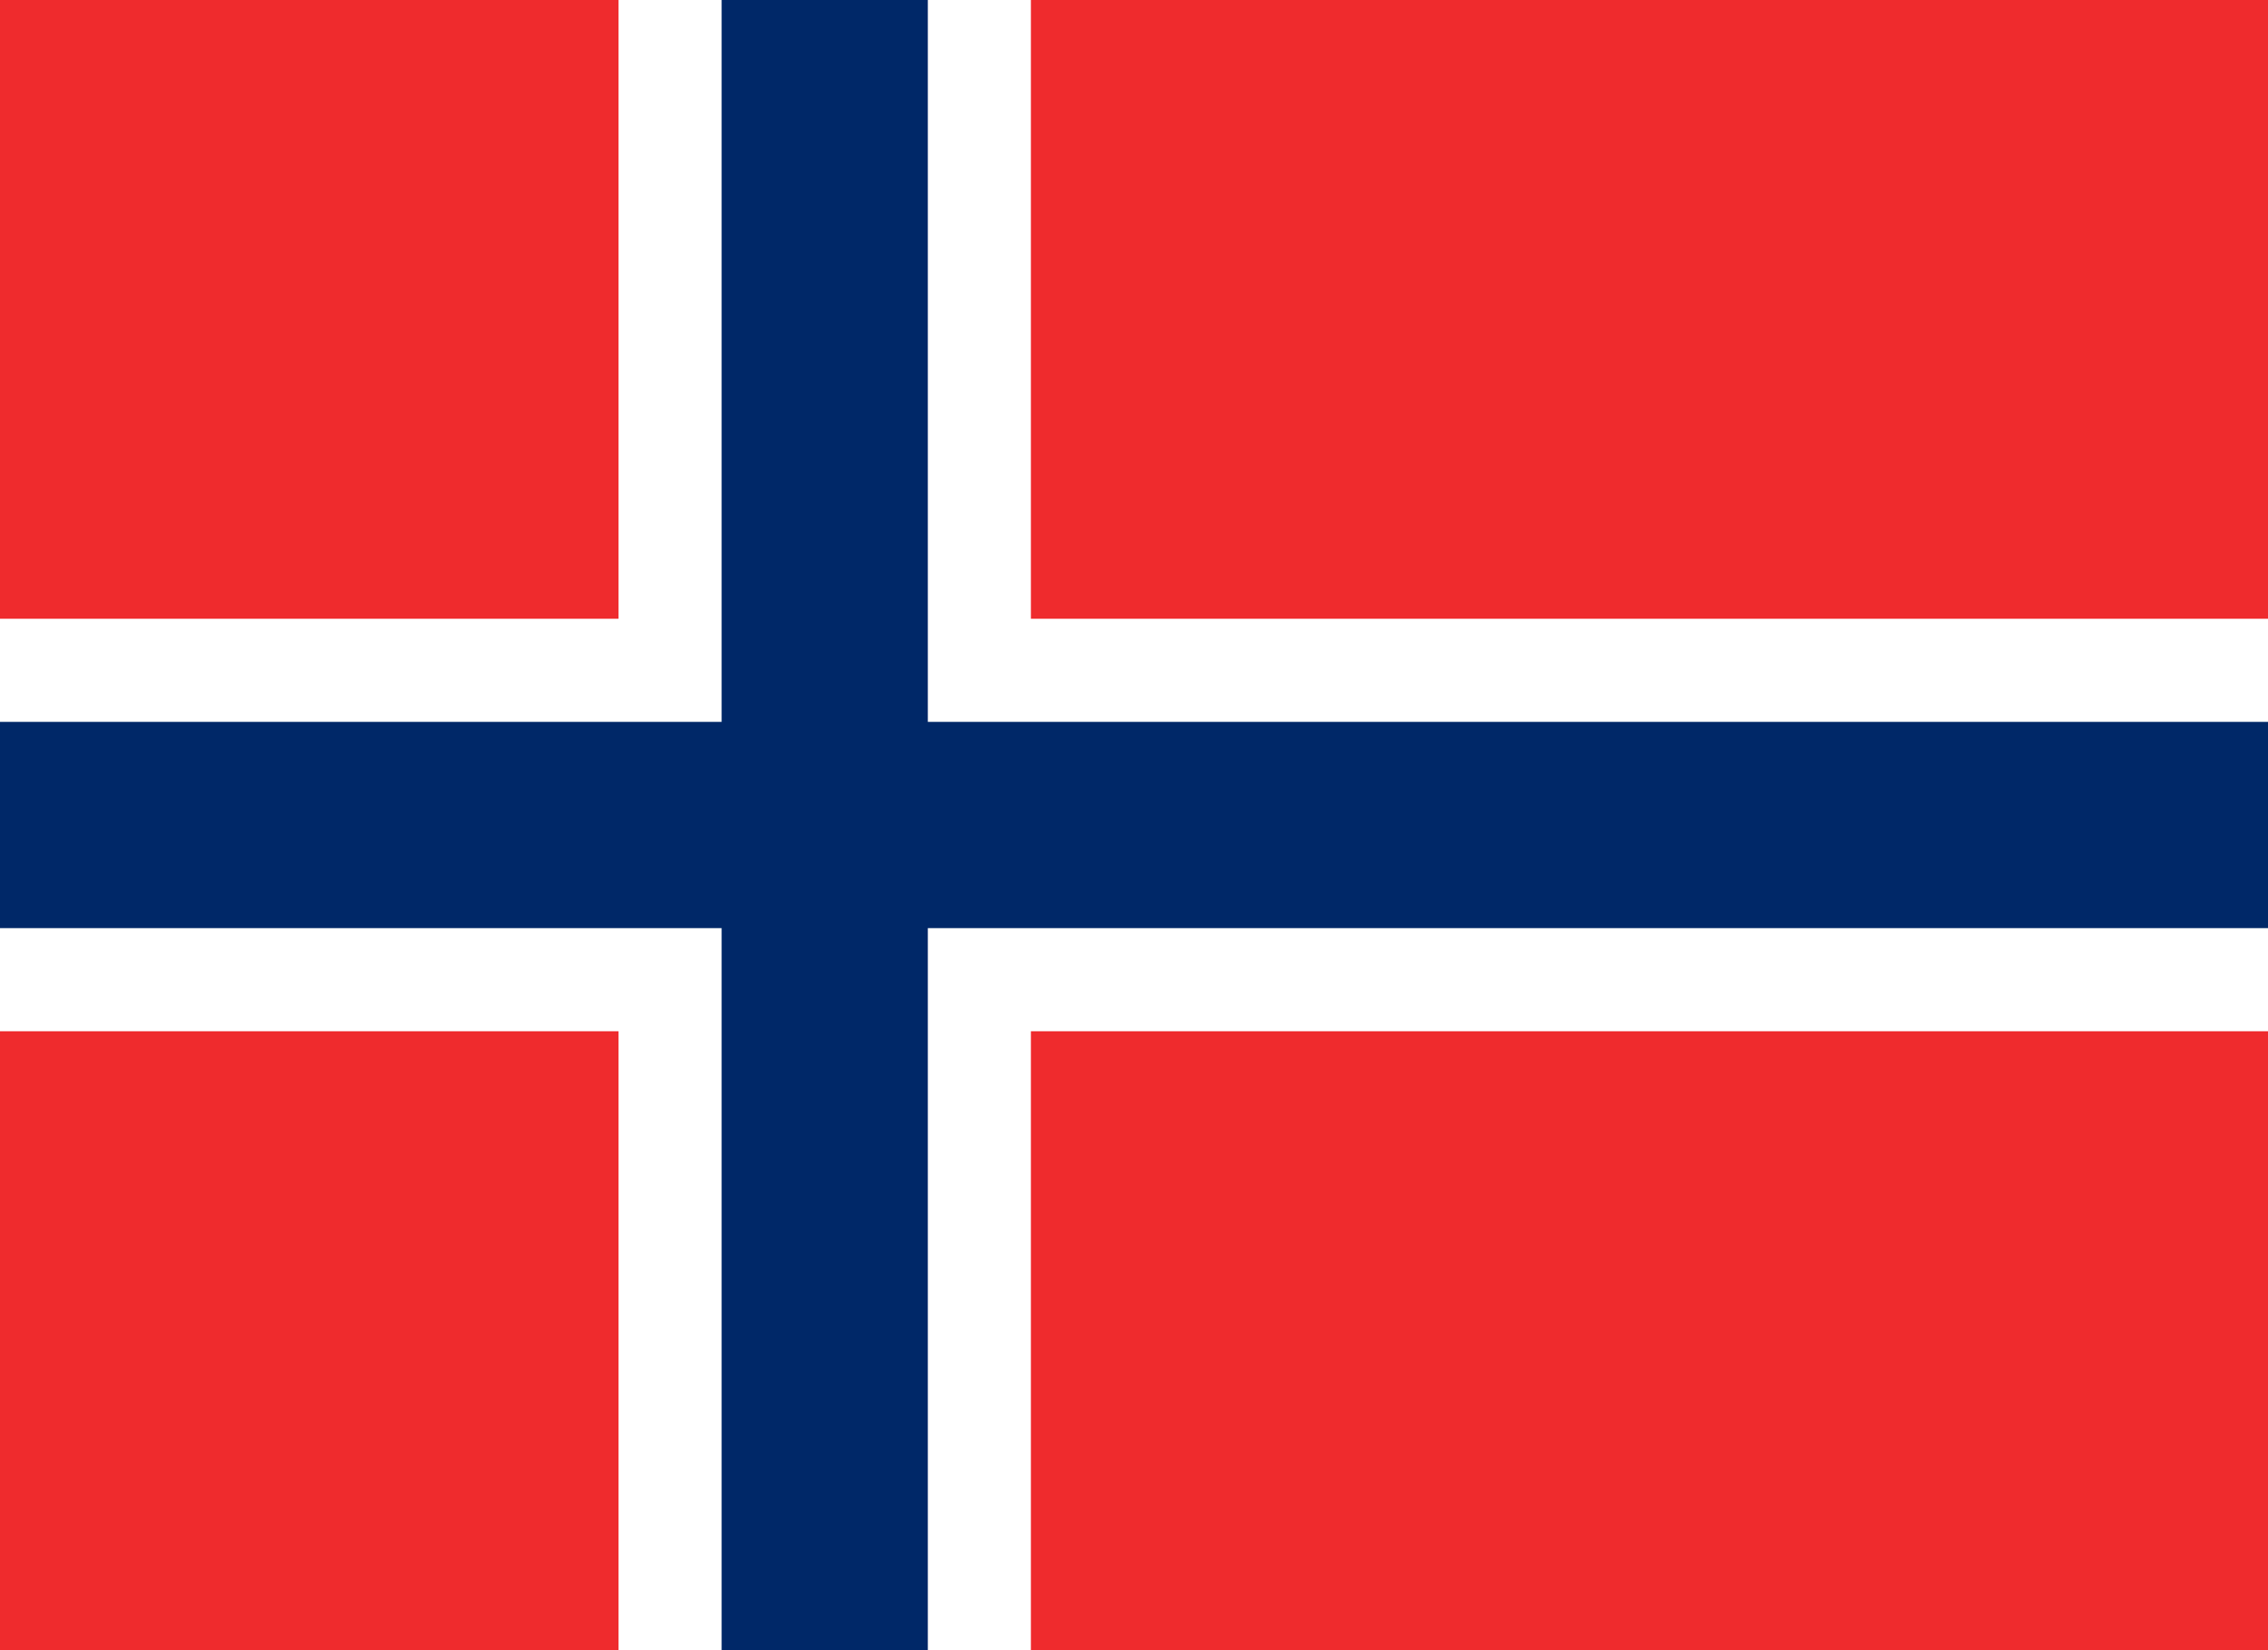 https://aerospaceexport.com/wp-content/uploads/2019/10/norway.png